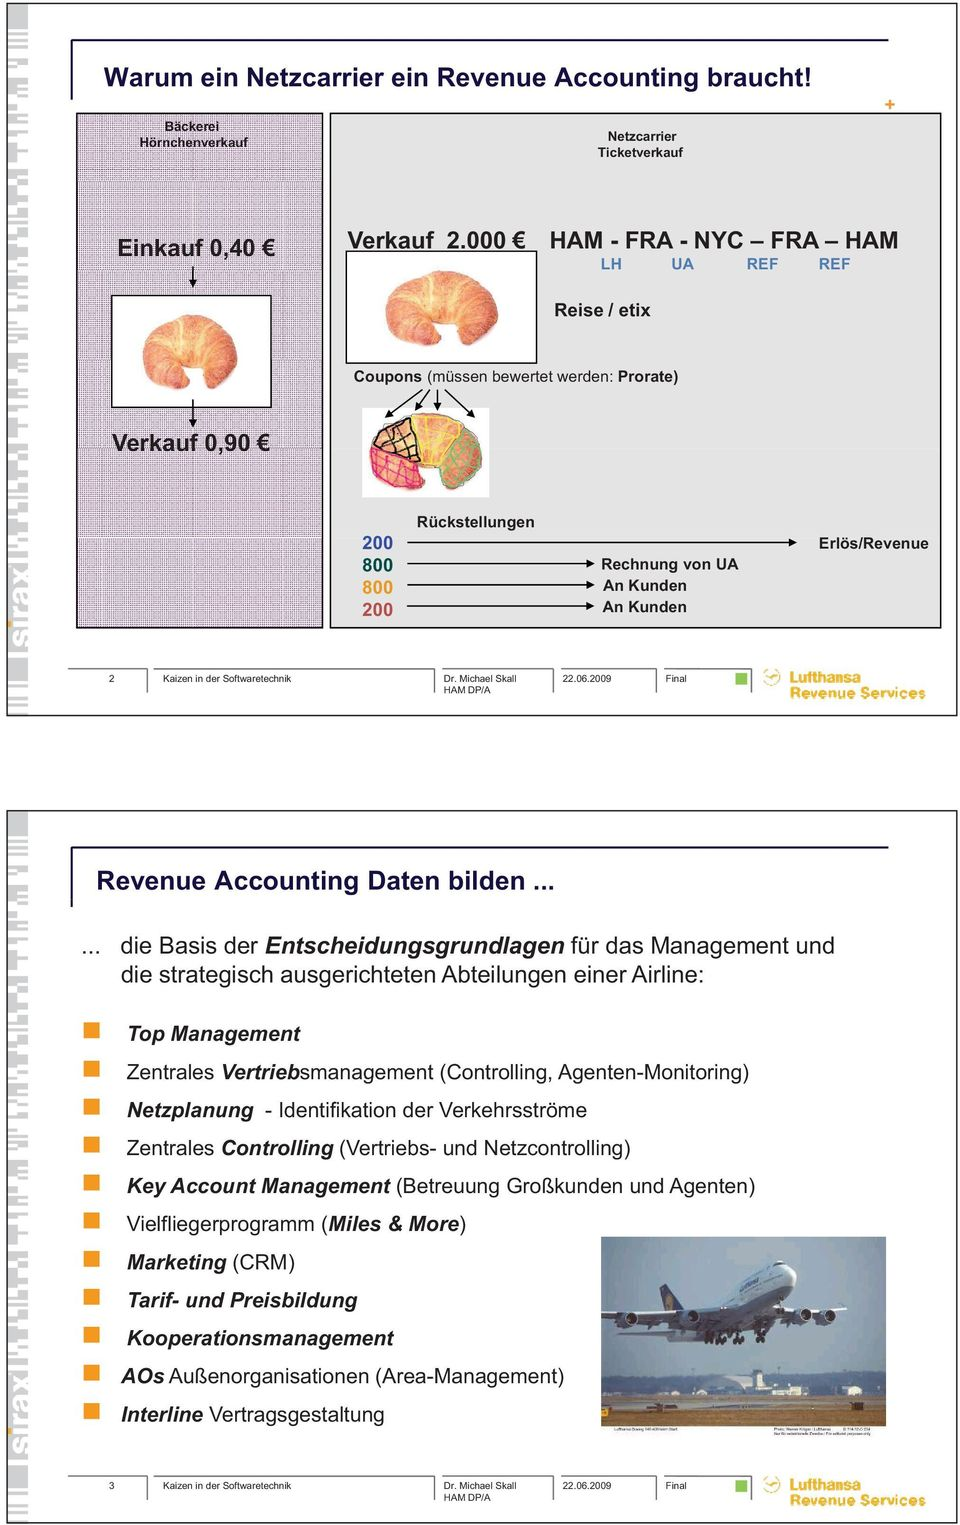 Revenue Accounting Daten bilden.